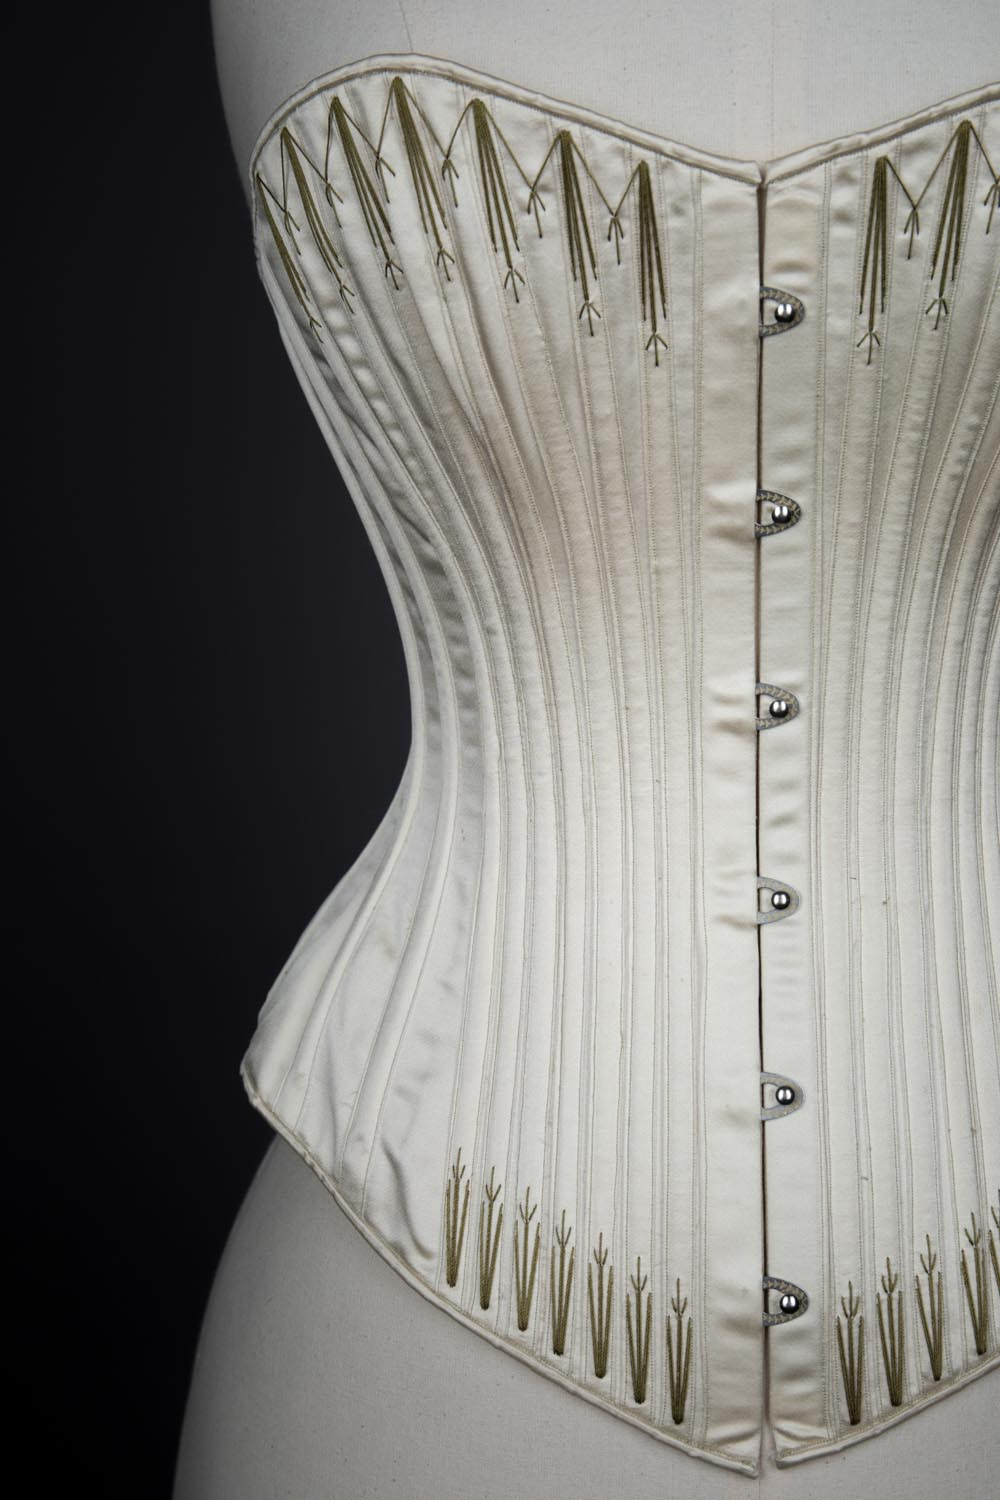 92de798c2c8 1890s Symington Reproduction Silk Corset By Cathy Hay. The Underpinnings  Museum. Photography · c.